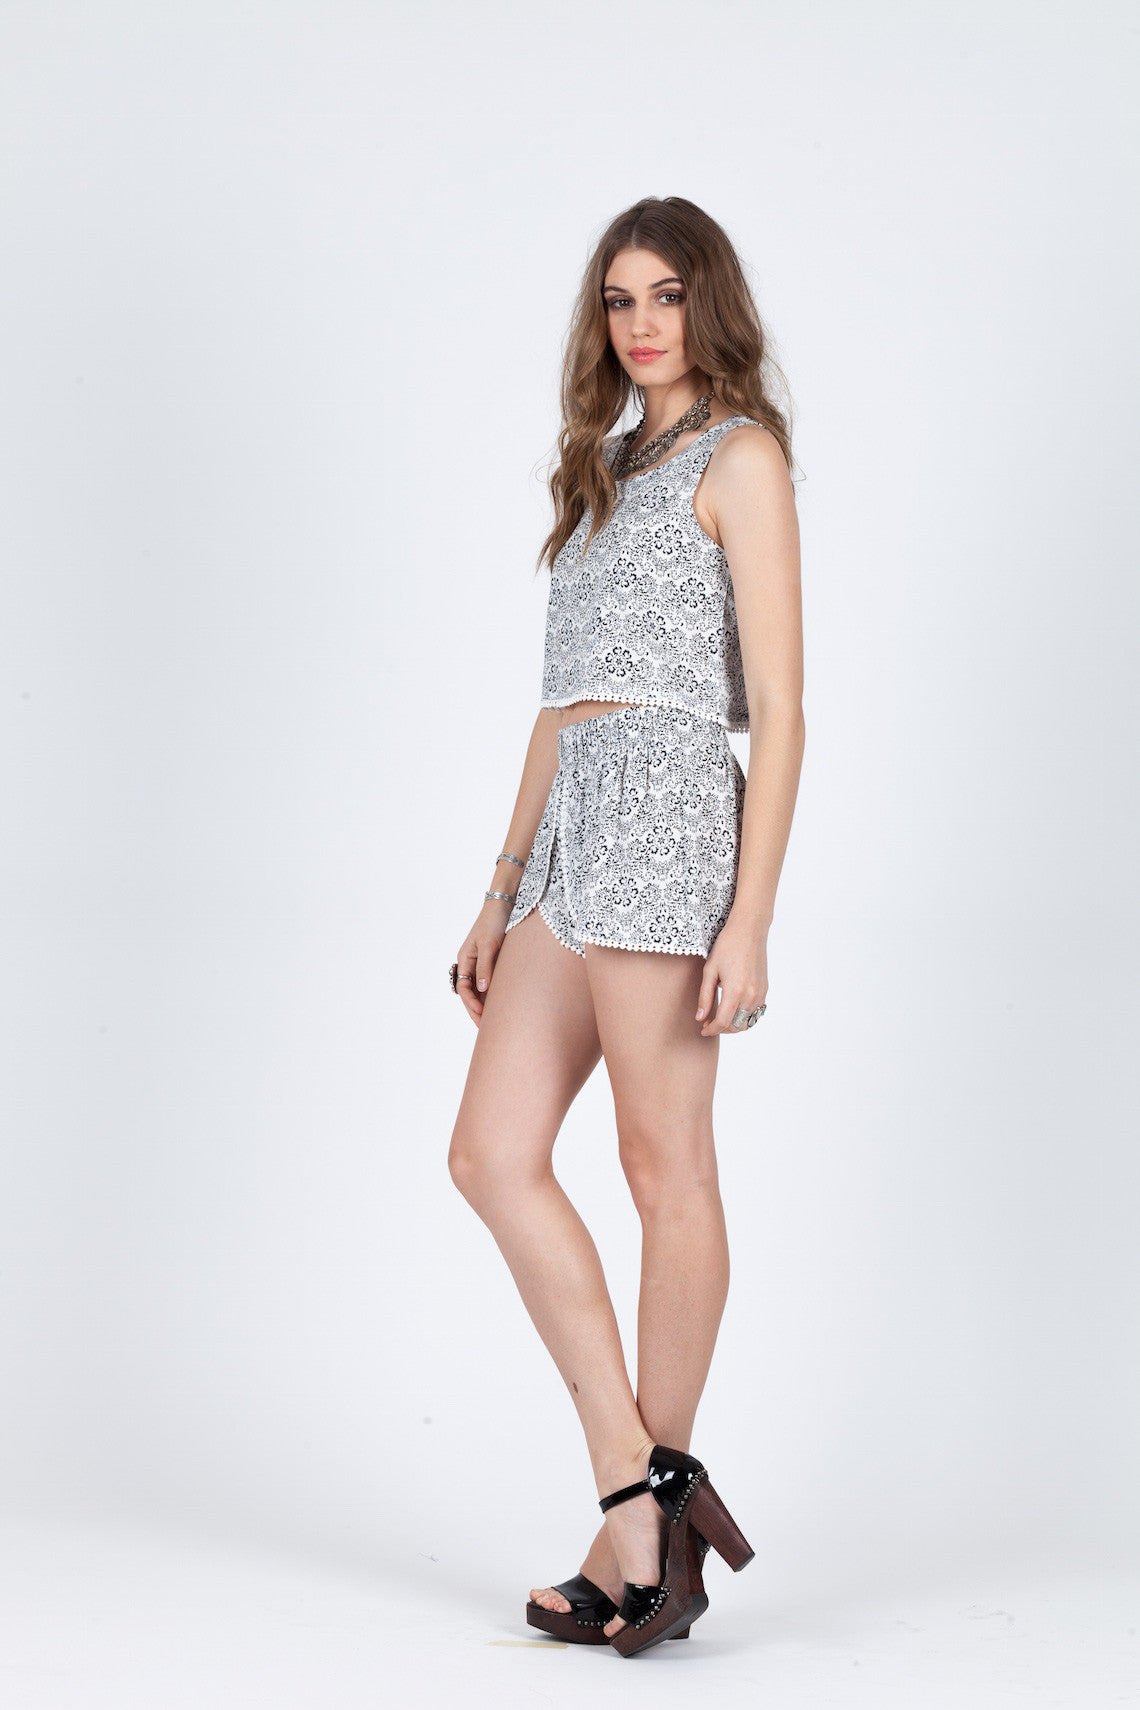 "Sweet & Simple Crop Top-Women - Apparel - Shirts - Blouses-Product Details 100% Viscose Pompom bottom hem detailing Shown with the Sweet & Simple Shorts Hand wash cold and lay flat to dry Model is wearing a size S Model is 5'9"" with 32"" bust, 24"" waist, and 34.5"" hips Easy Measure Conversion XS/0 S/1 M/2 L/3 US 0/2 2/4 6/8 8/10 AUS 4/6 6/8 10/12 12/14 BRAZIL 34/36 36/38 40/42 42/44 CHINA 76a/80a 80a/84a 88a/92a 92a/95a EUP 32/34 34/36 38/40 40/42 JAP 5/7 7/9 11/13 13/15 RUS 42 42/44 46/48 50/52"